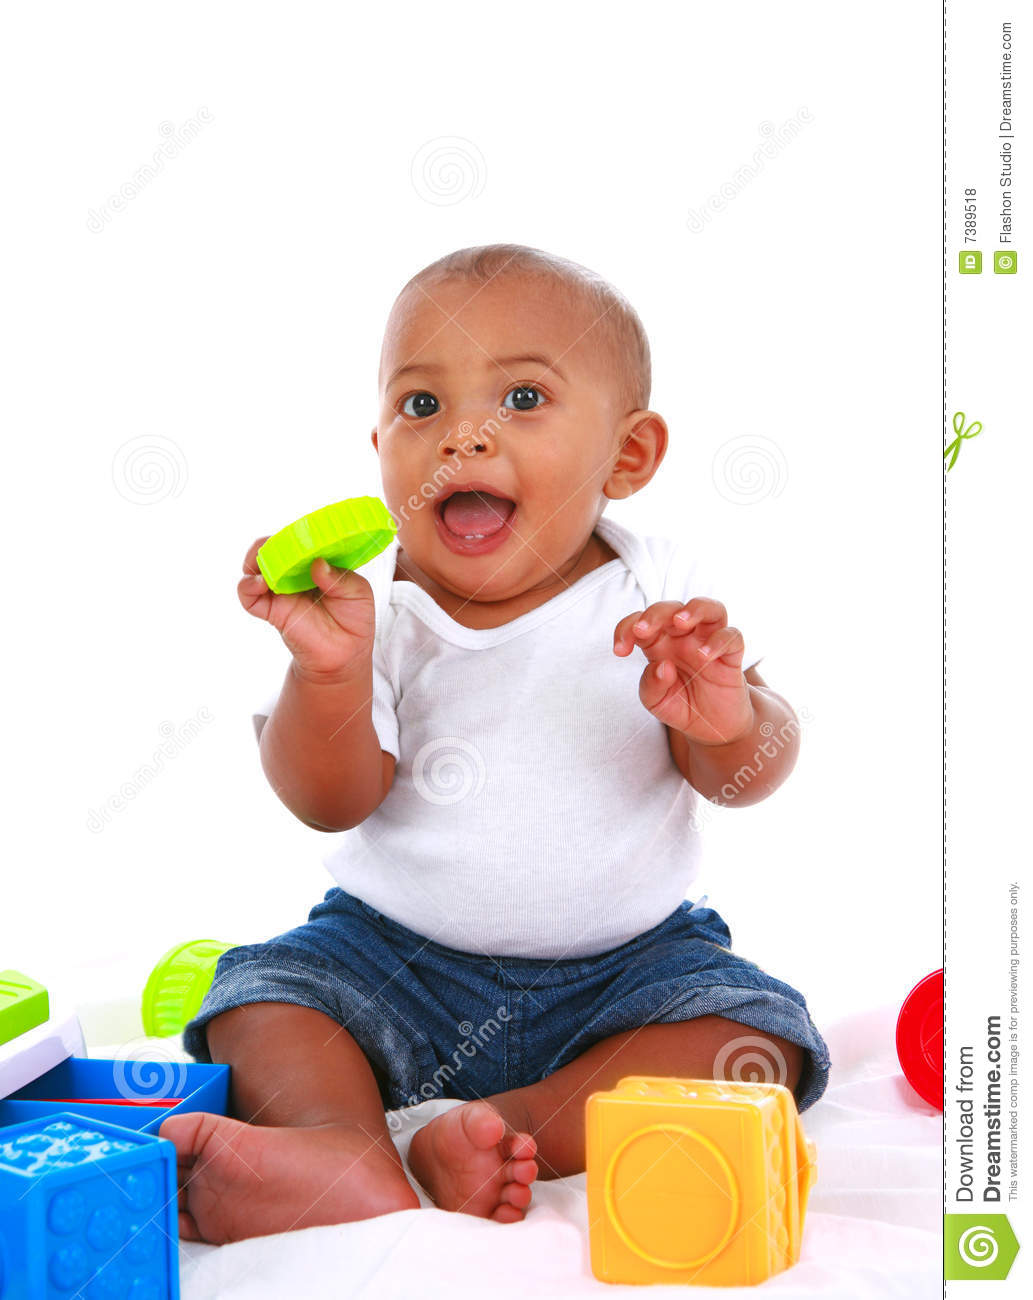 Toys For 7 Month Old : Toys month old baby n bricks